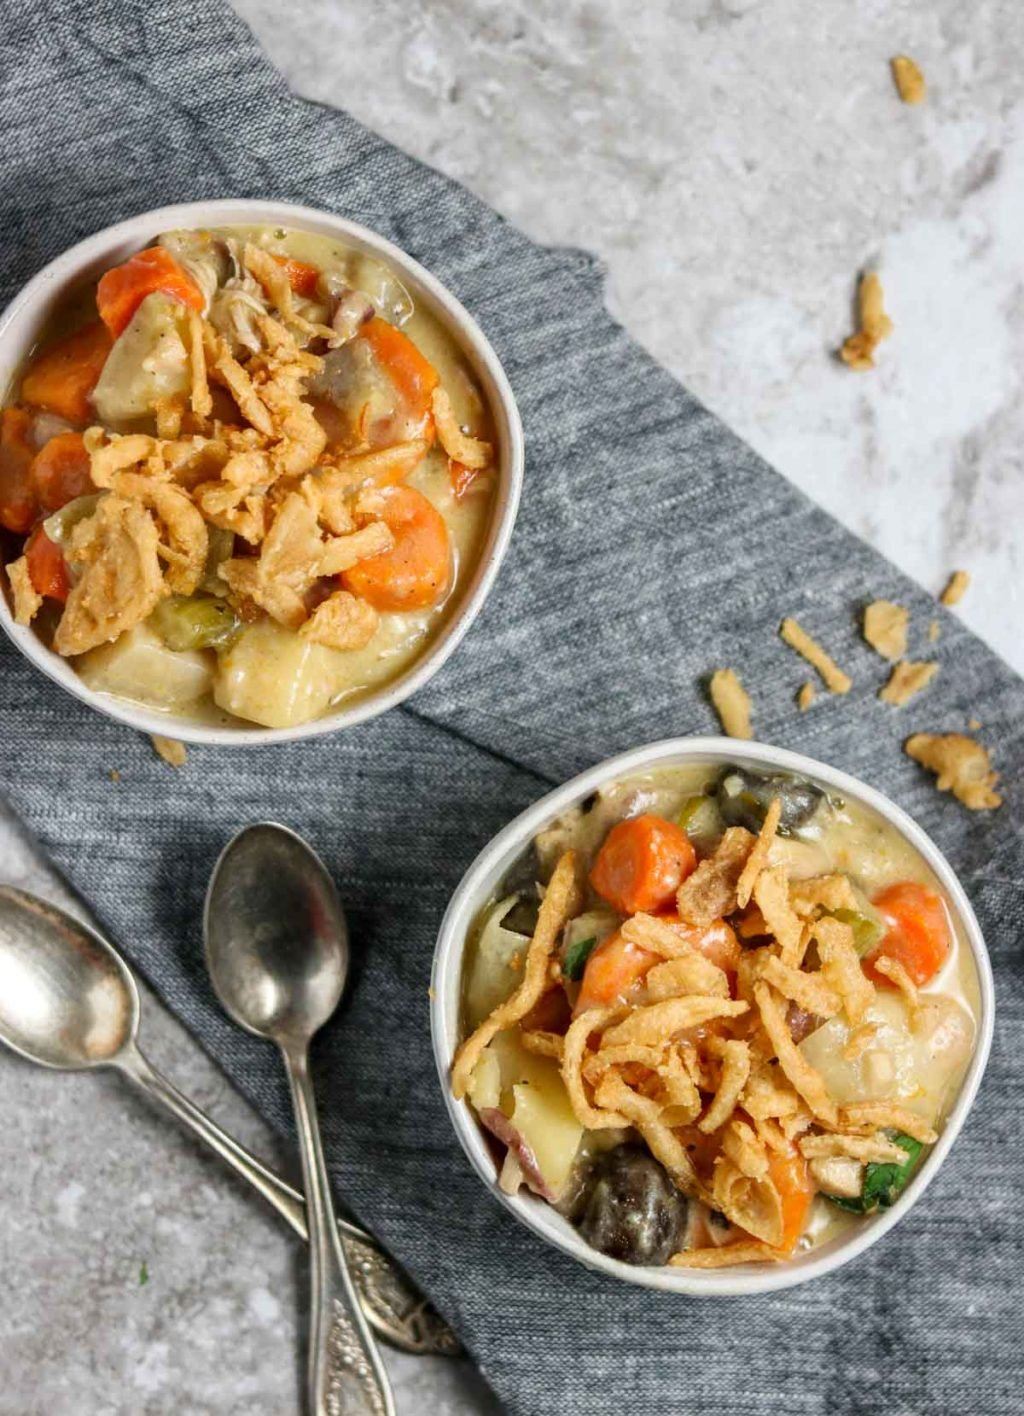 two white bowls of chicken pot roast garnished with french fried onions, sitting on a grey towel with two spoons